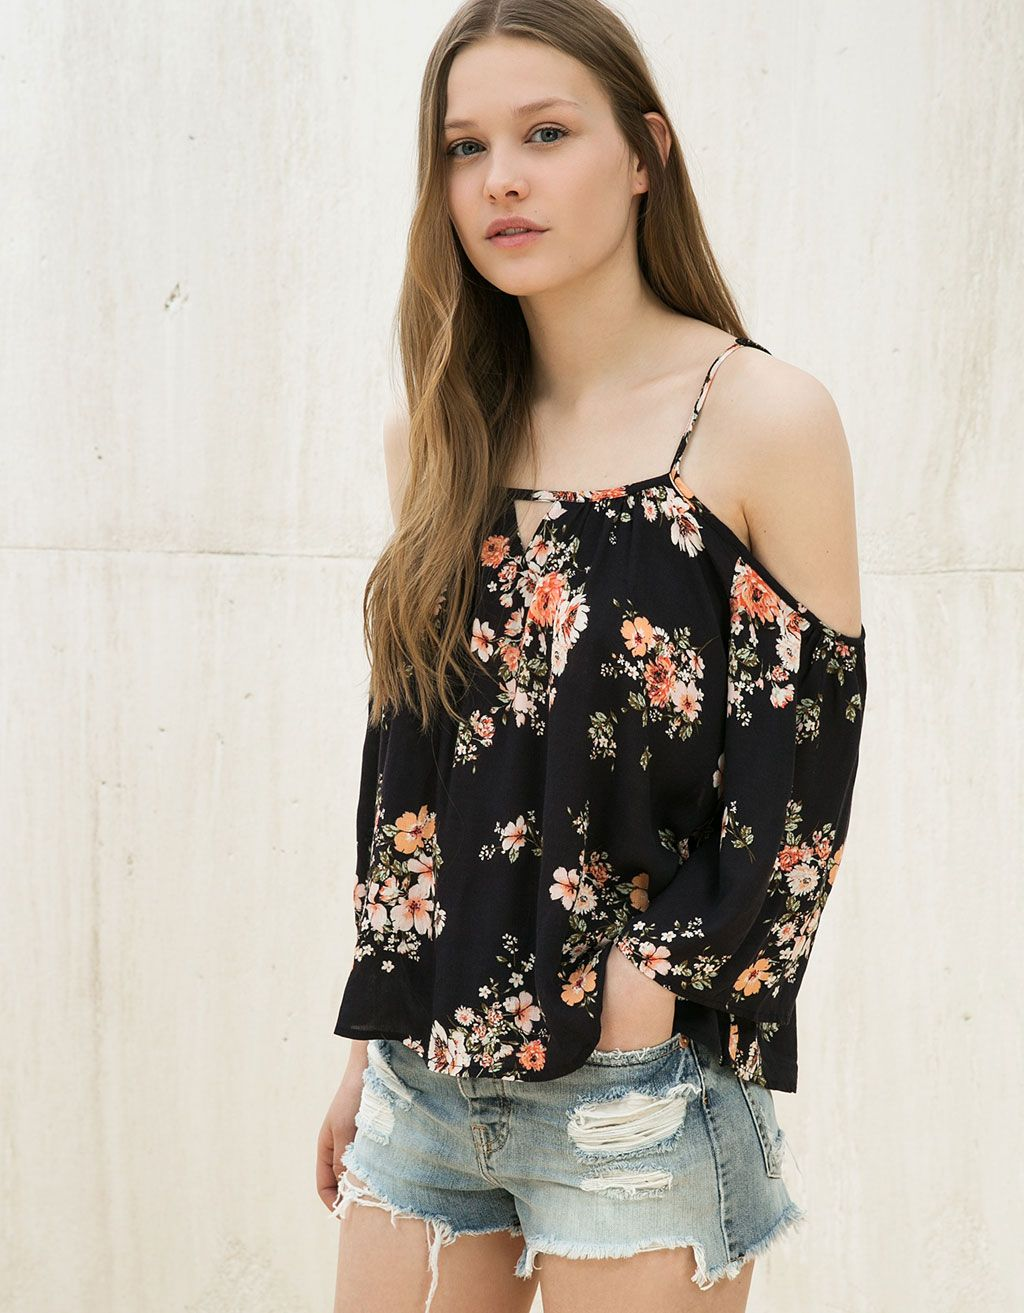 dab1c7ba3 Off shoulder 3/4 sleeve top   Wants!   Trendy outfits for teens ...